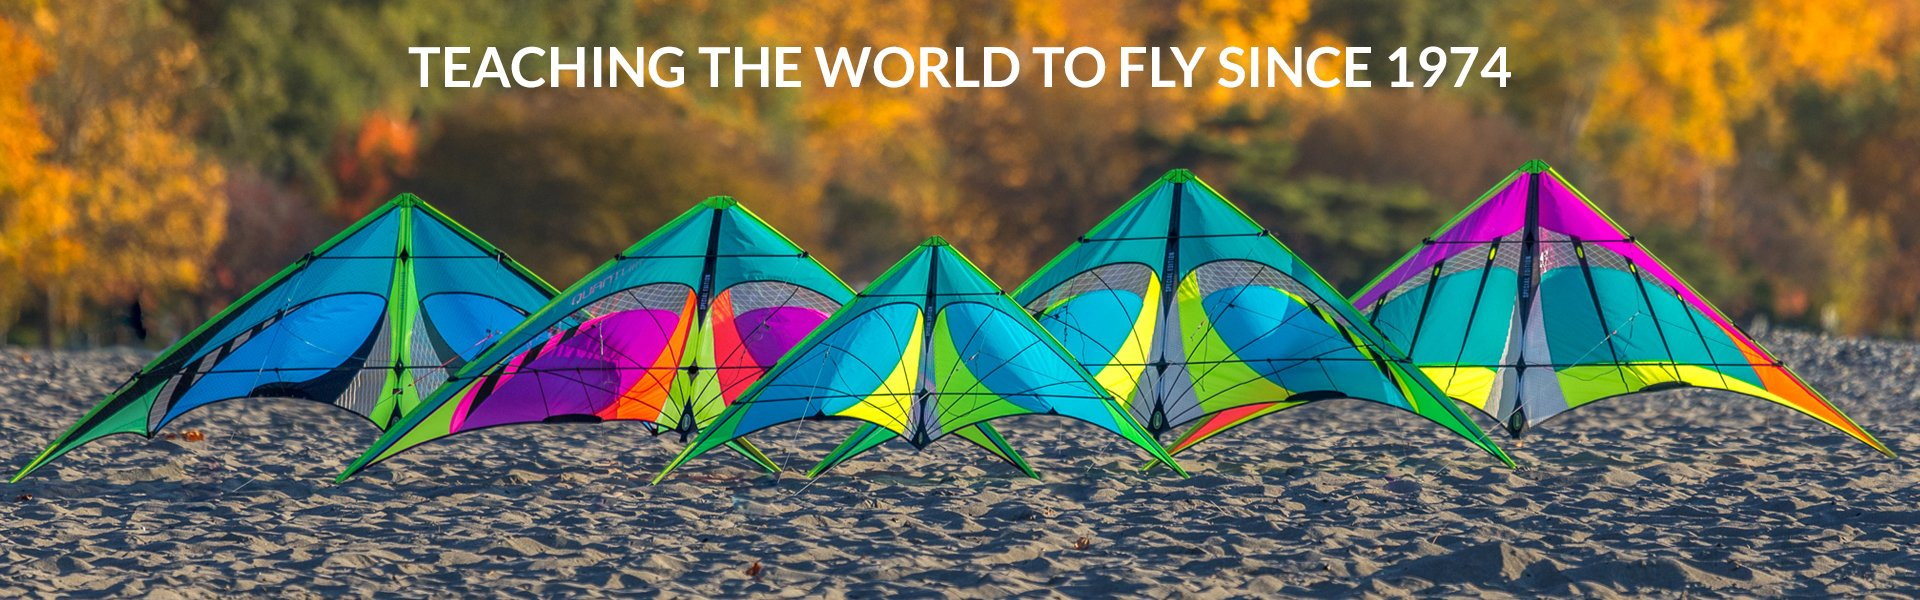 Prism Special Edition Stunt Kites